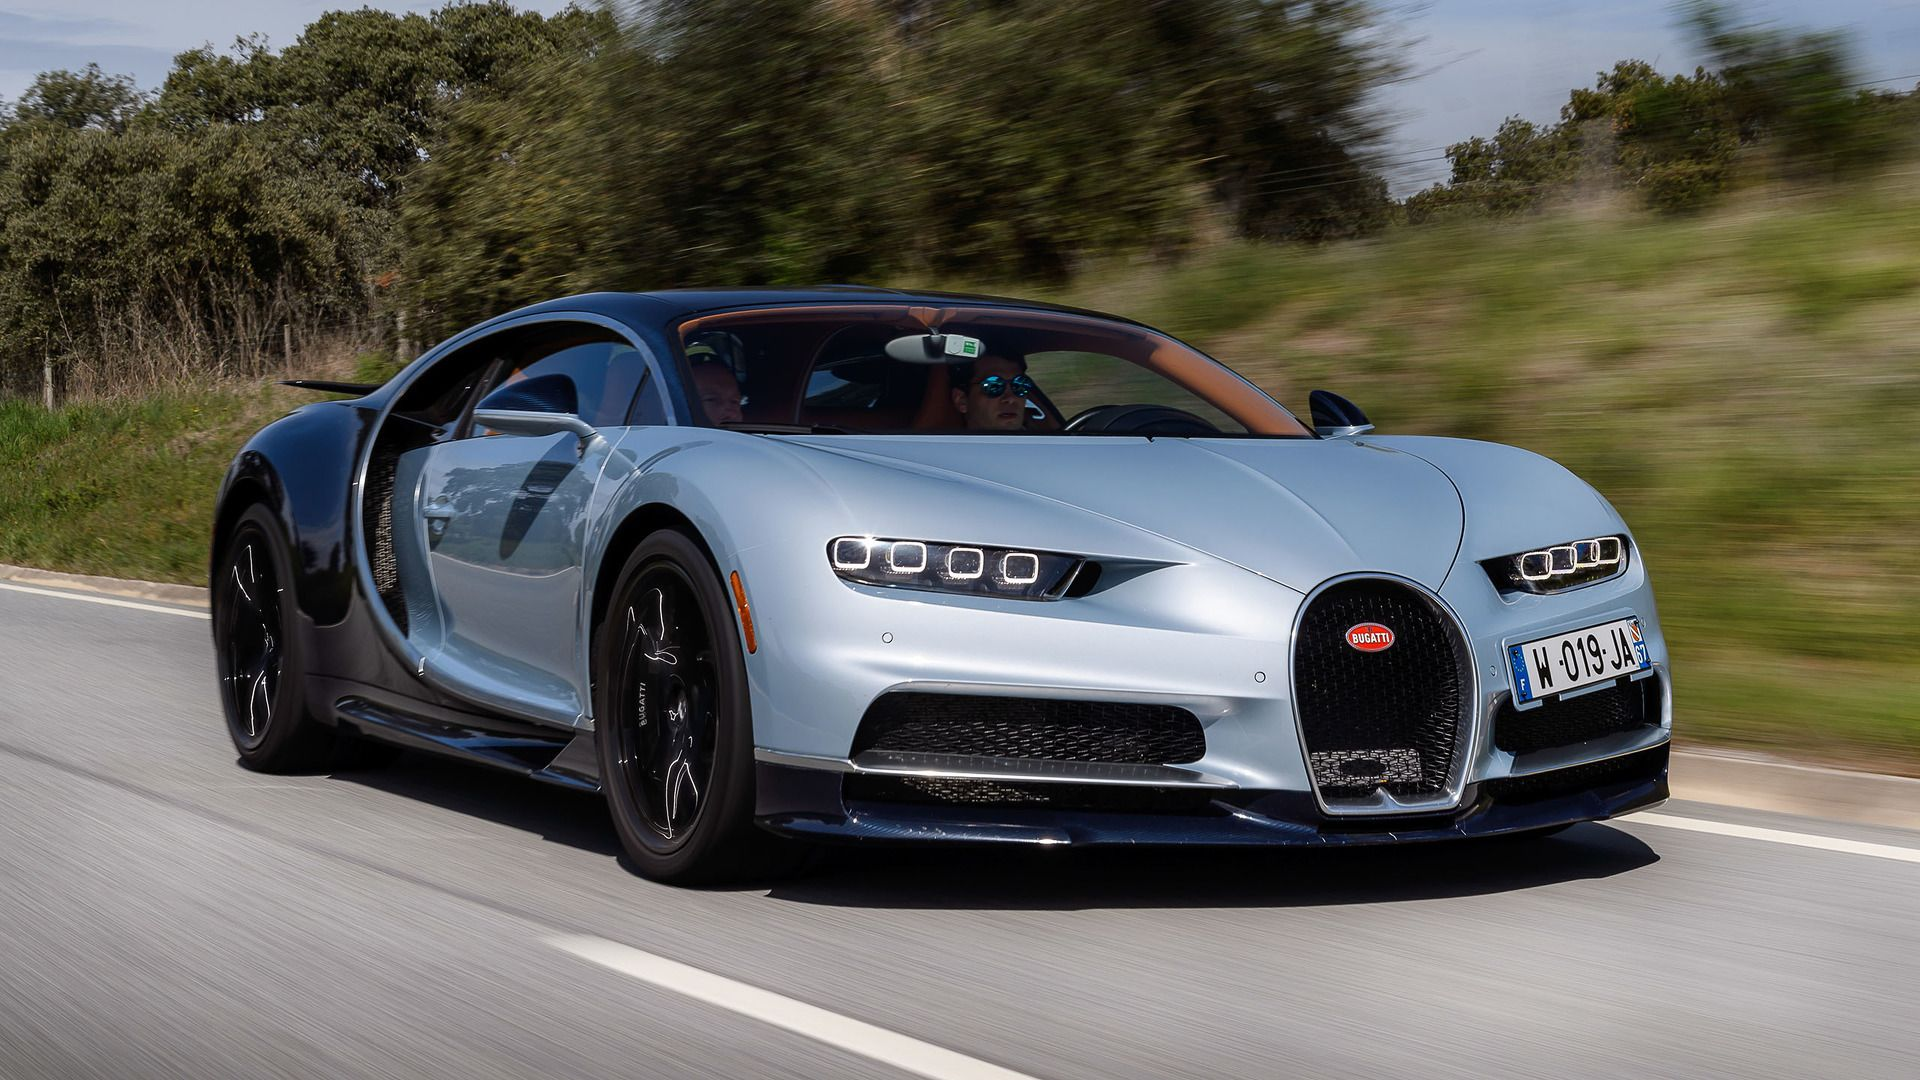 In Every Aspect Bugatti Set Out To Make The Chiron At Least